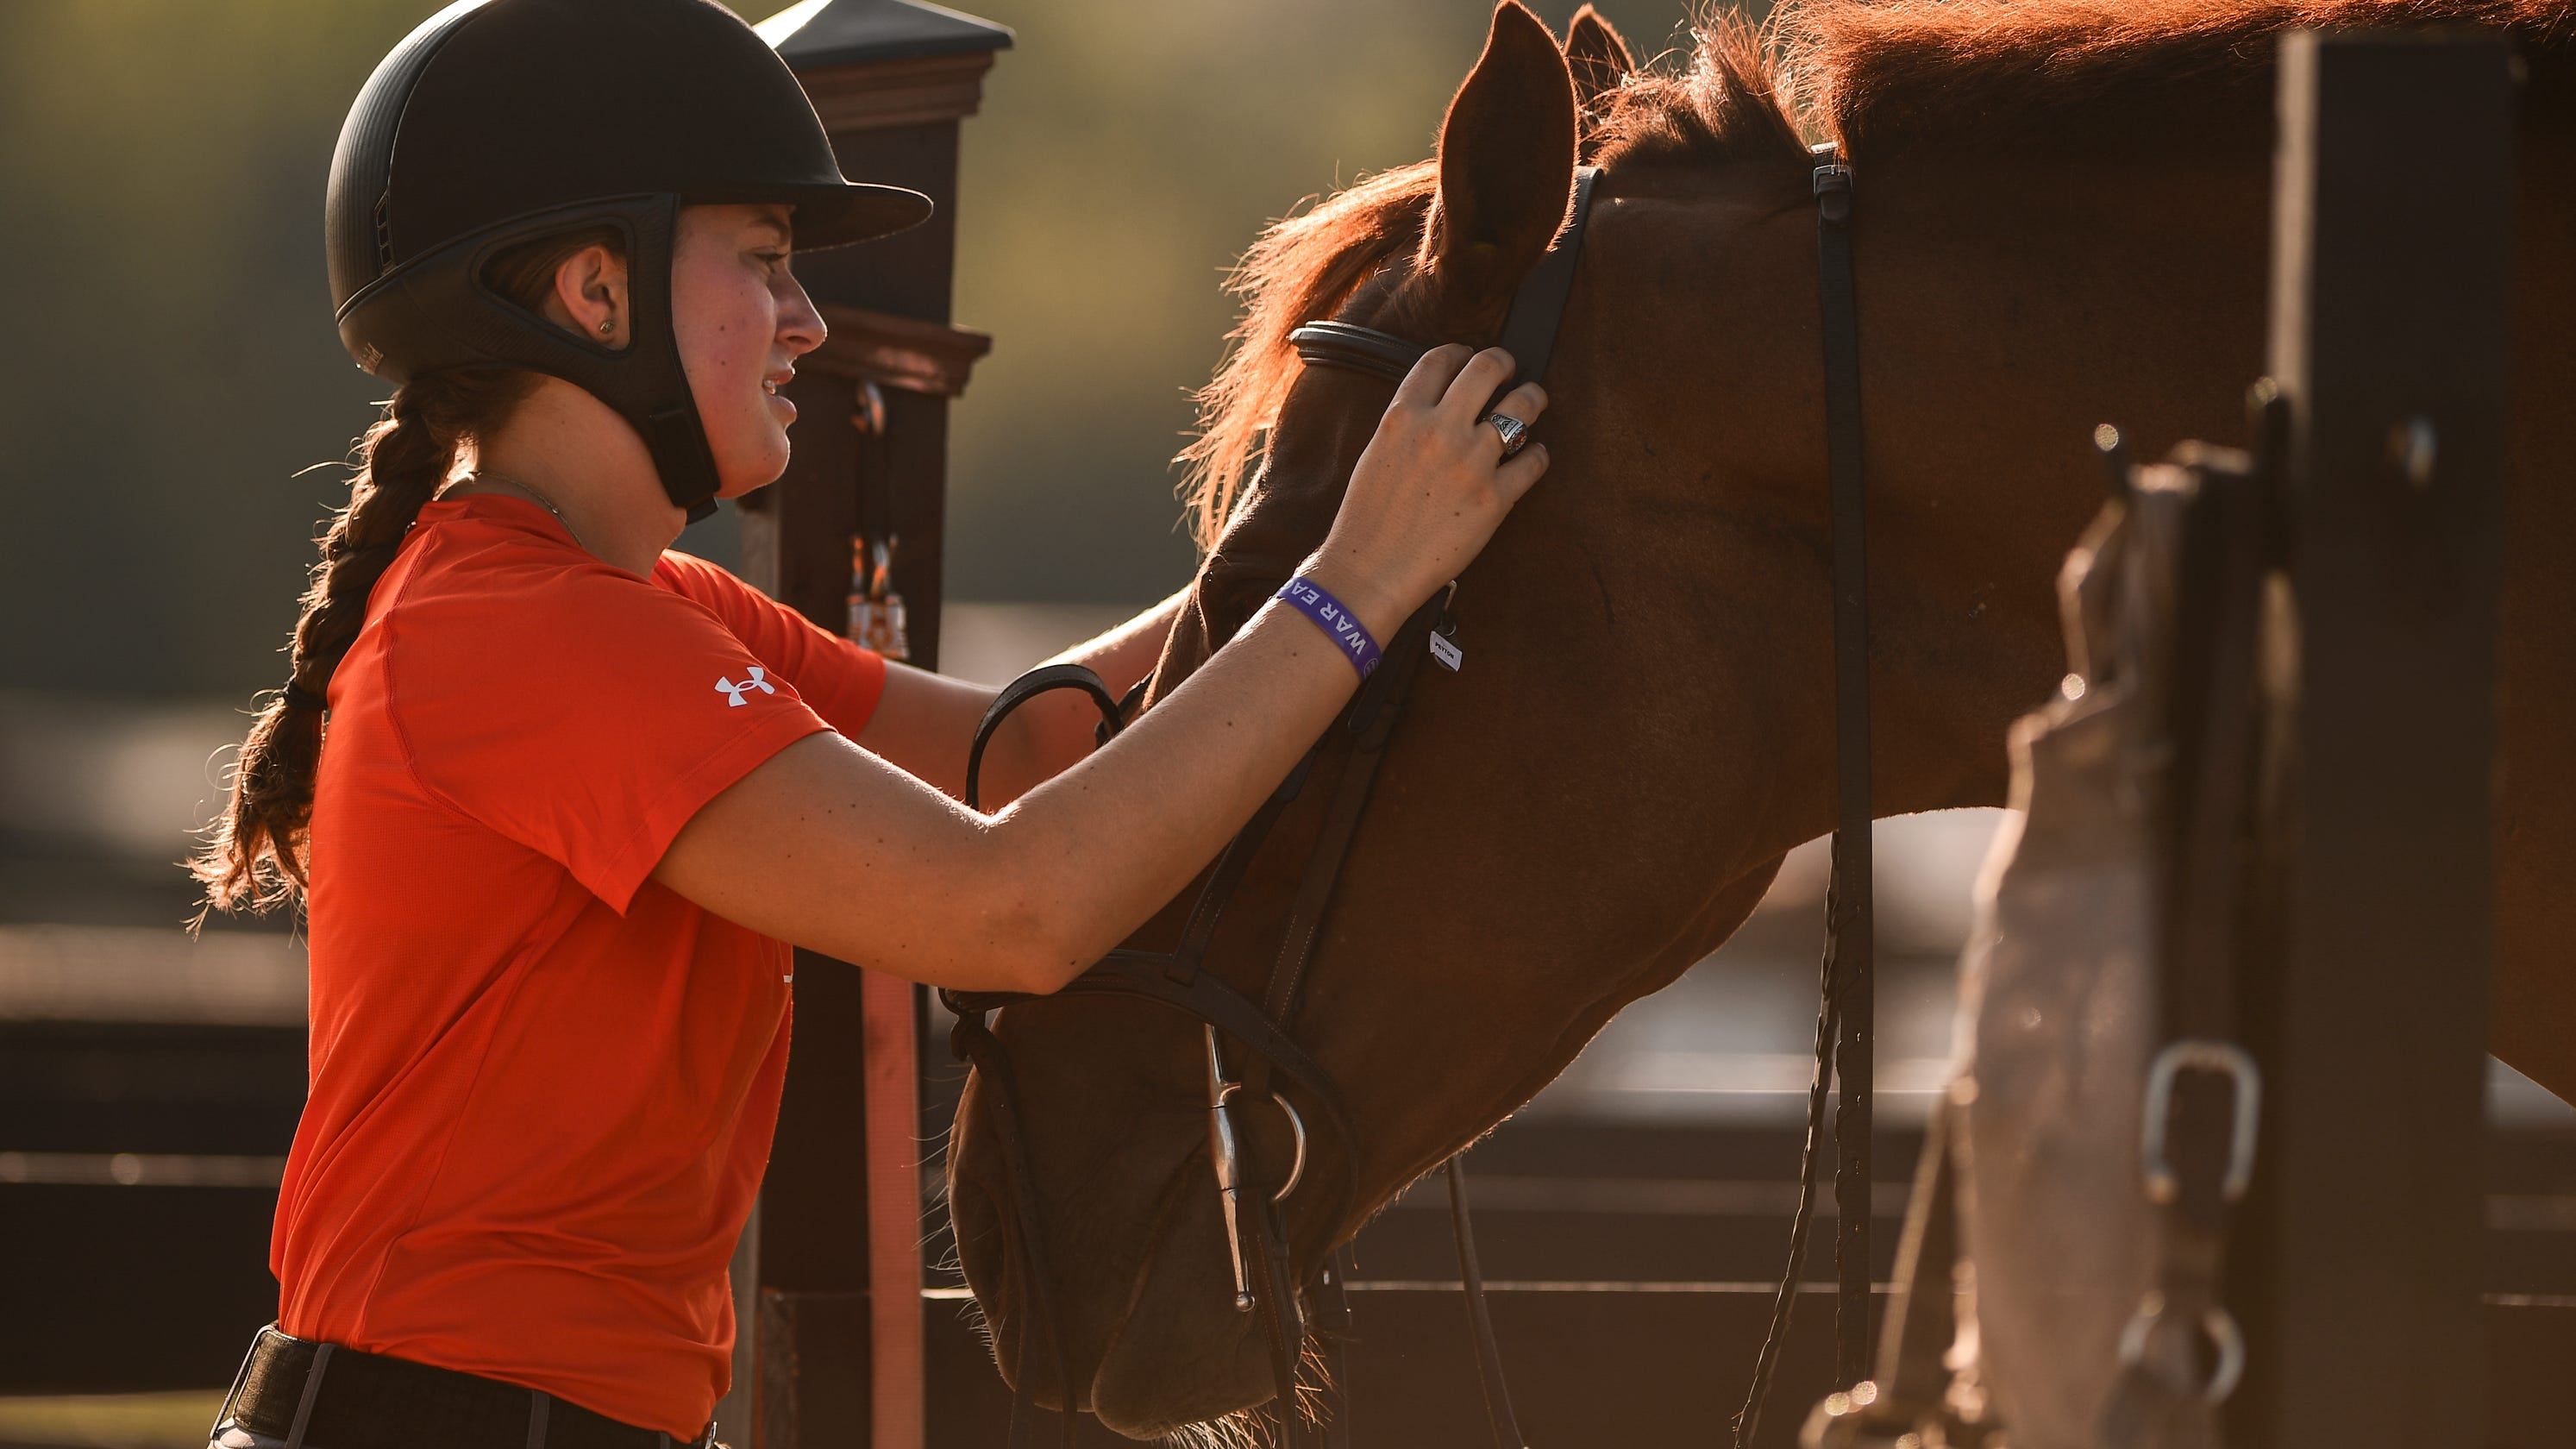 A horse is a horse of course, but to Auburn's equestrian team, they are the unsung heroes